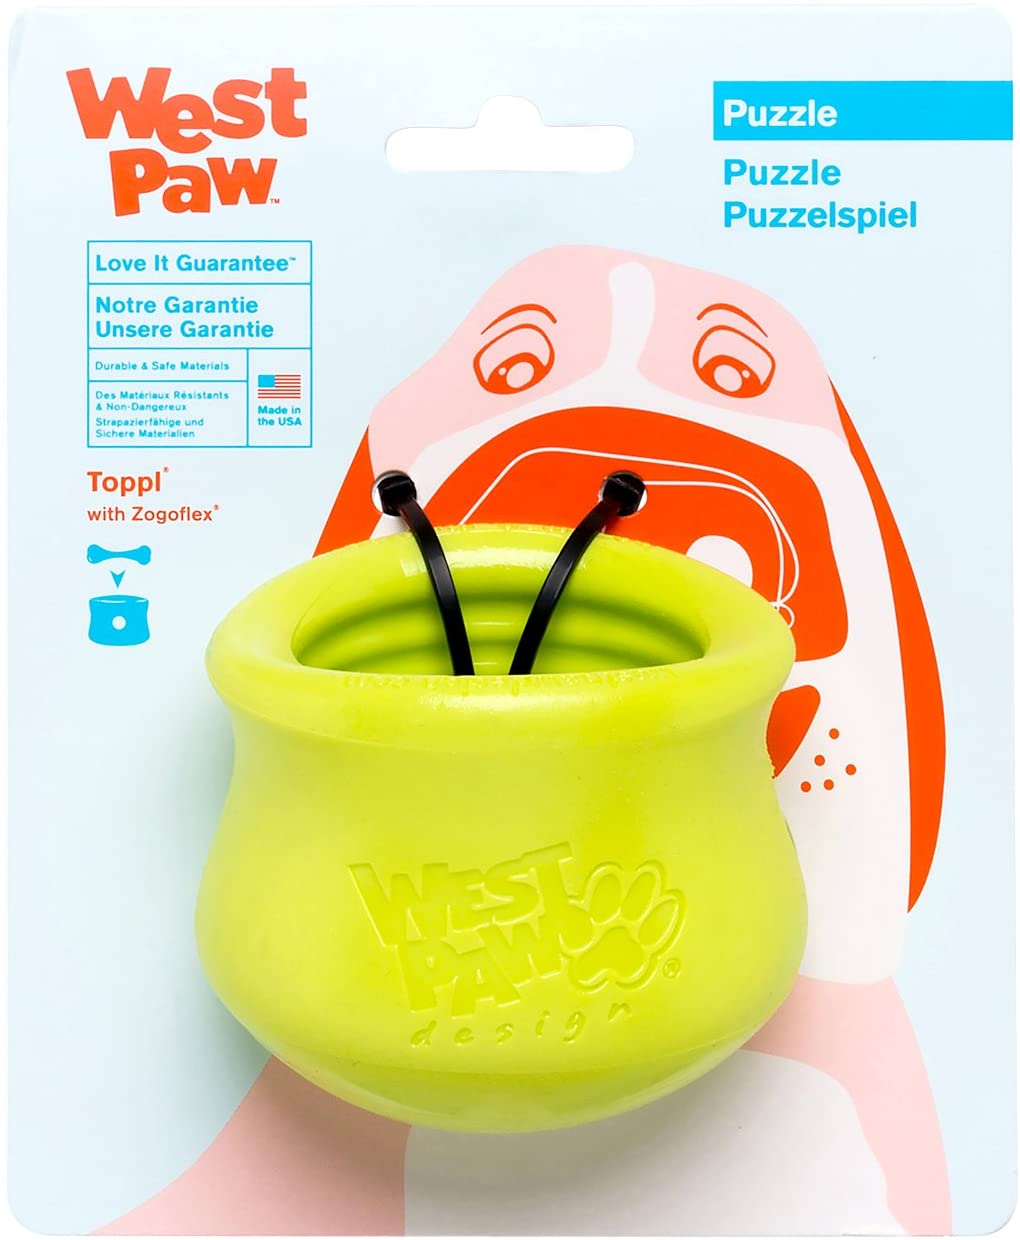 Catch Interactive Chew Toys for Dogs Made in USA Holds Kibble Dog Toy for Moderate Chewers Fetch WEST PAW Zogoflex Toppl Treat Dispensing Dog Toy Puzzle Dog Training Treats